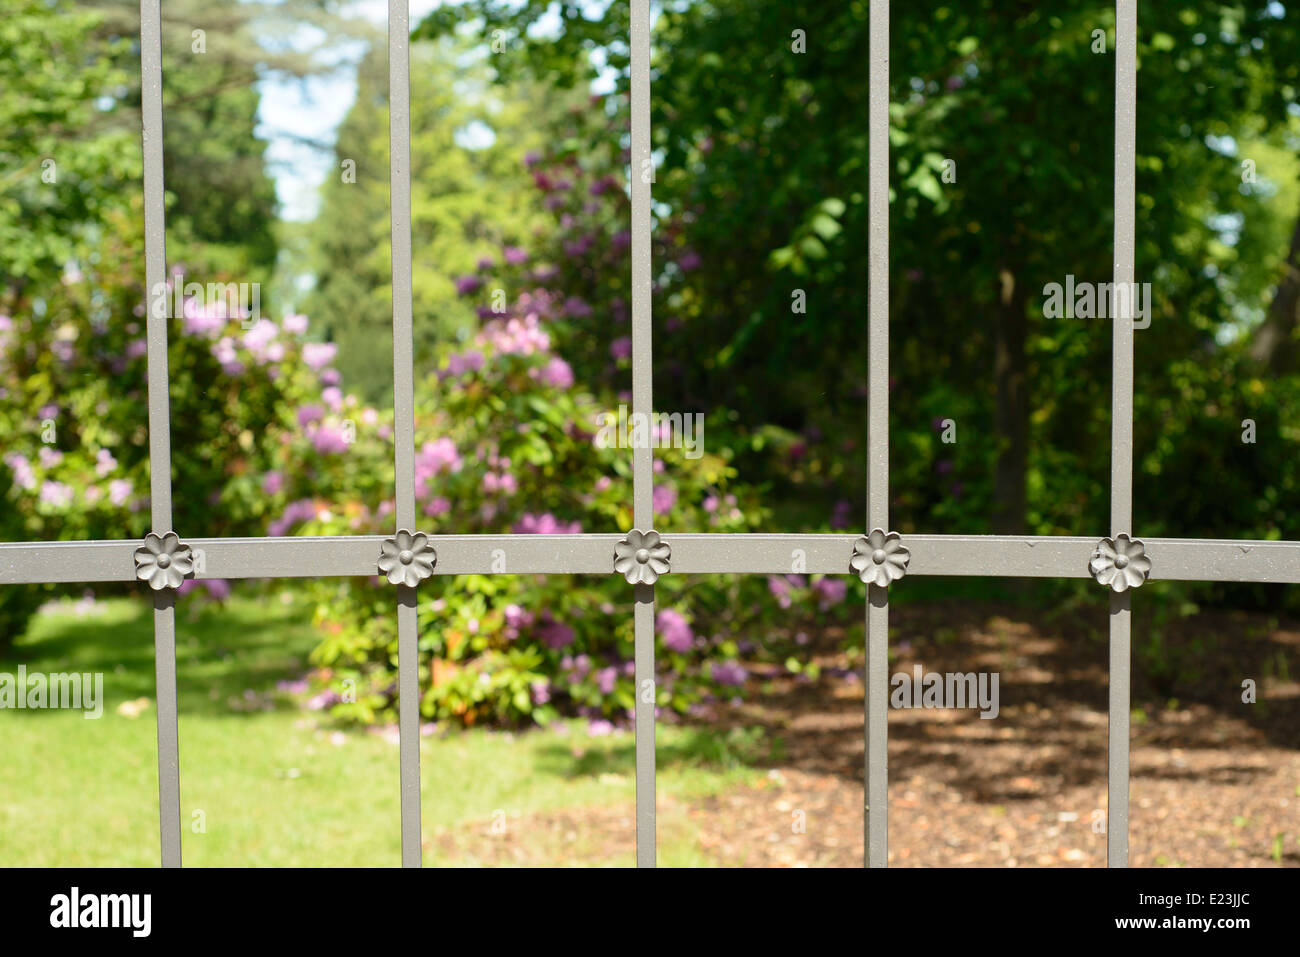 An image of a flower garden protected by an iron fence with crafted handiwork - Stock Image